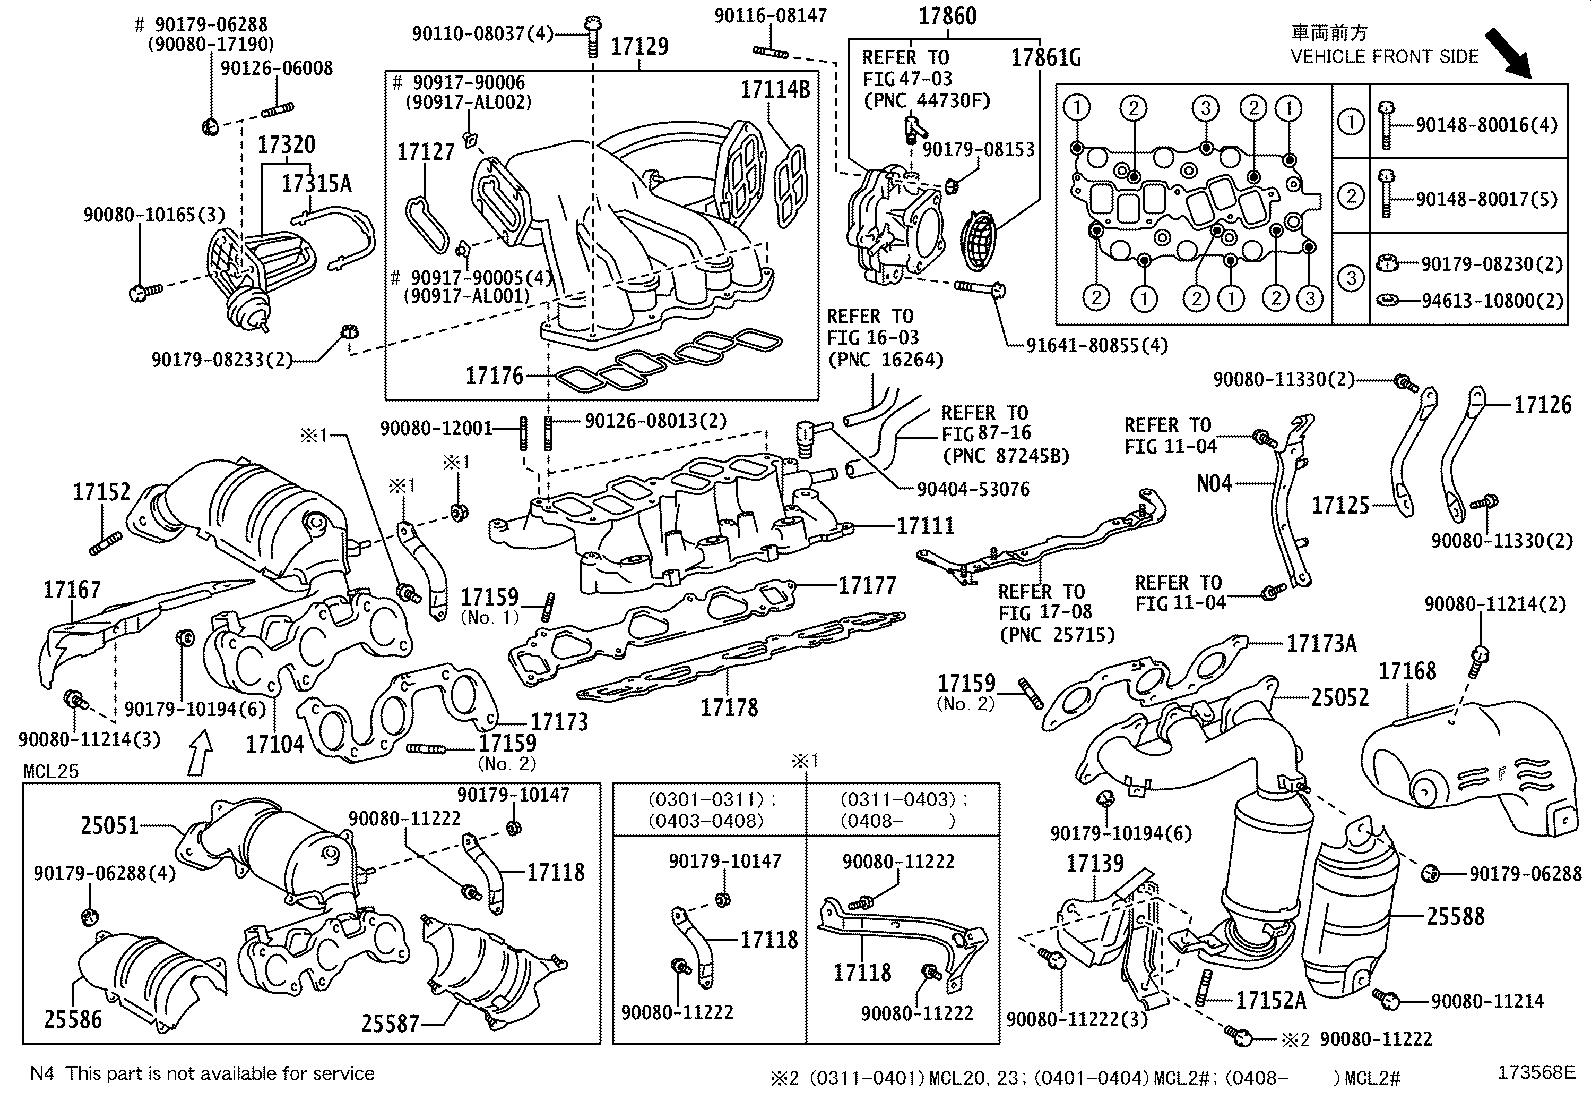 Camry Exhaust Diagram